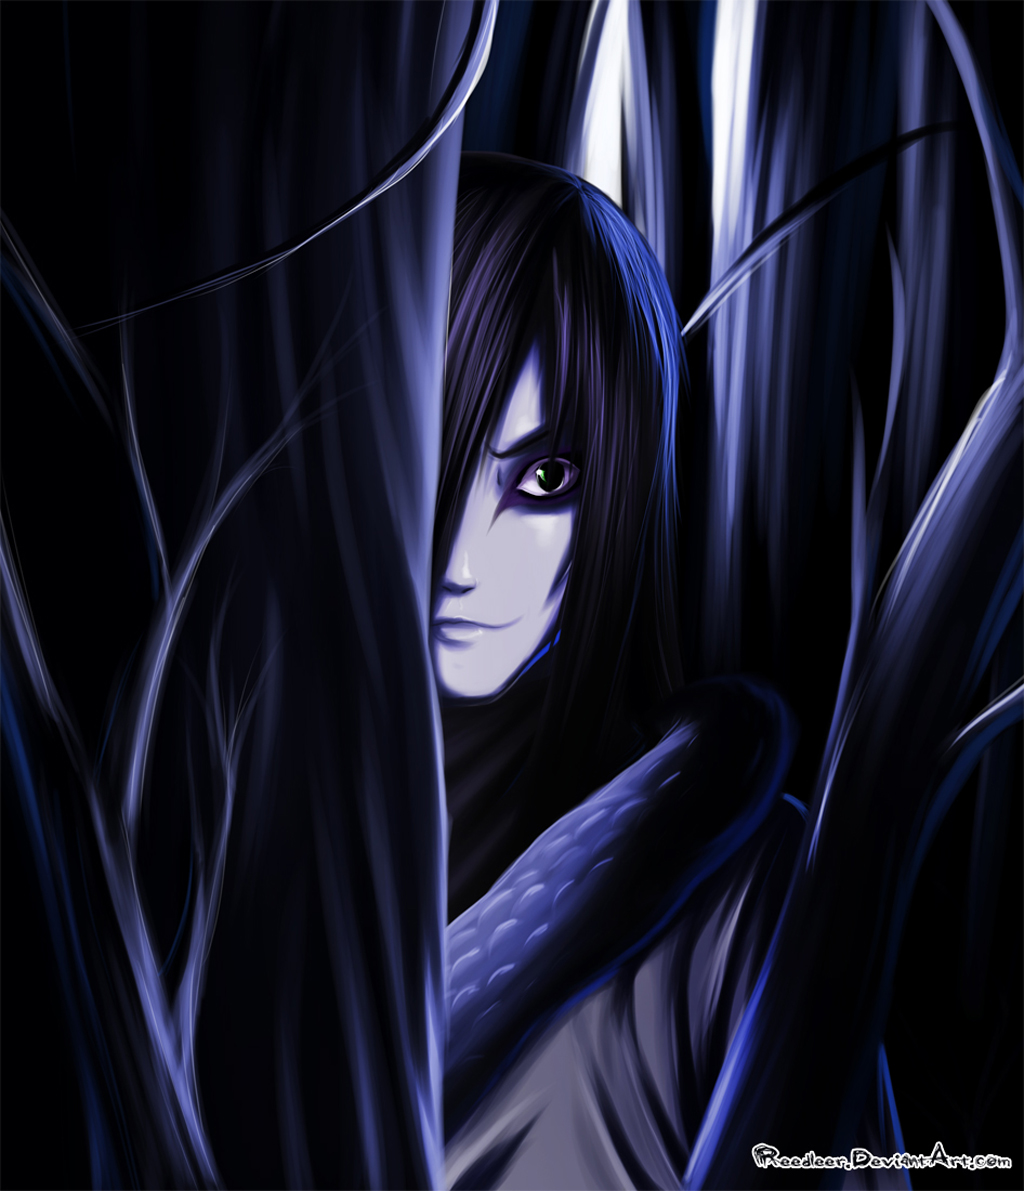 Orochimaru images Oroc... Orochimaru Wallpaper Desktop